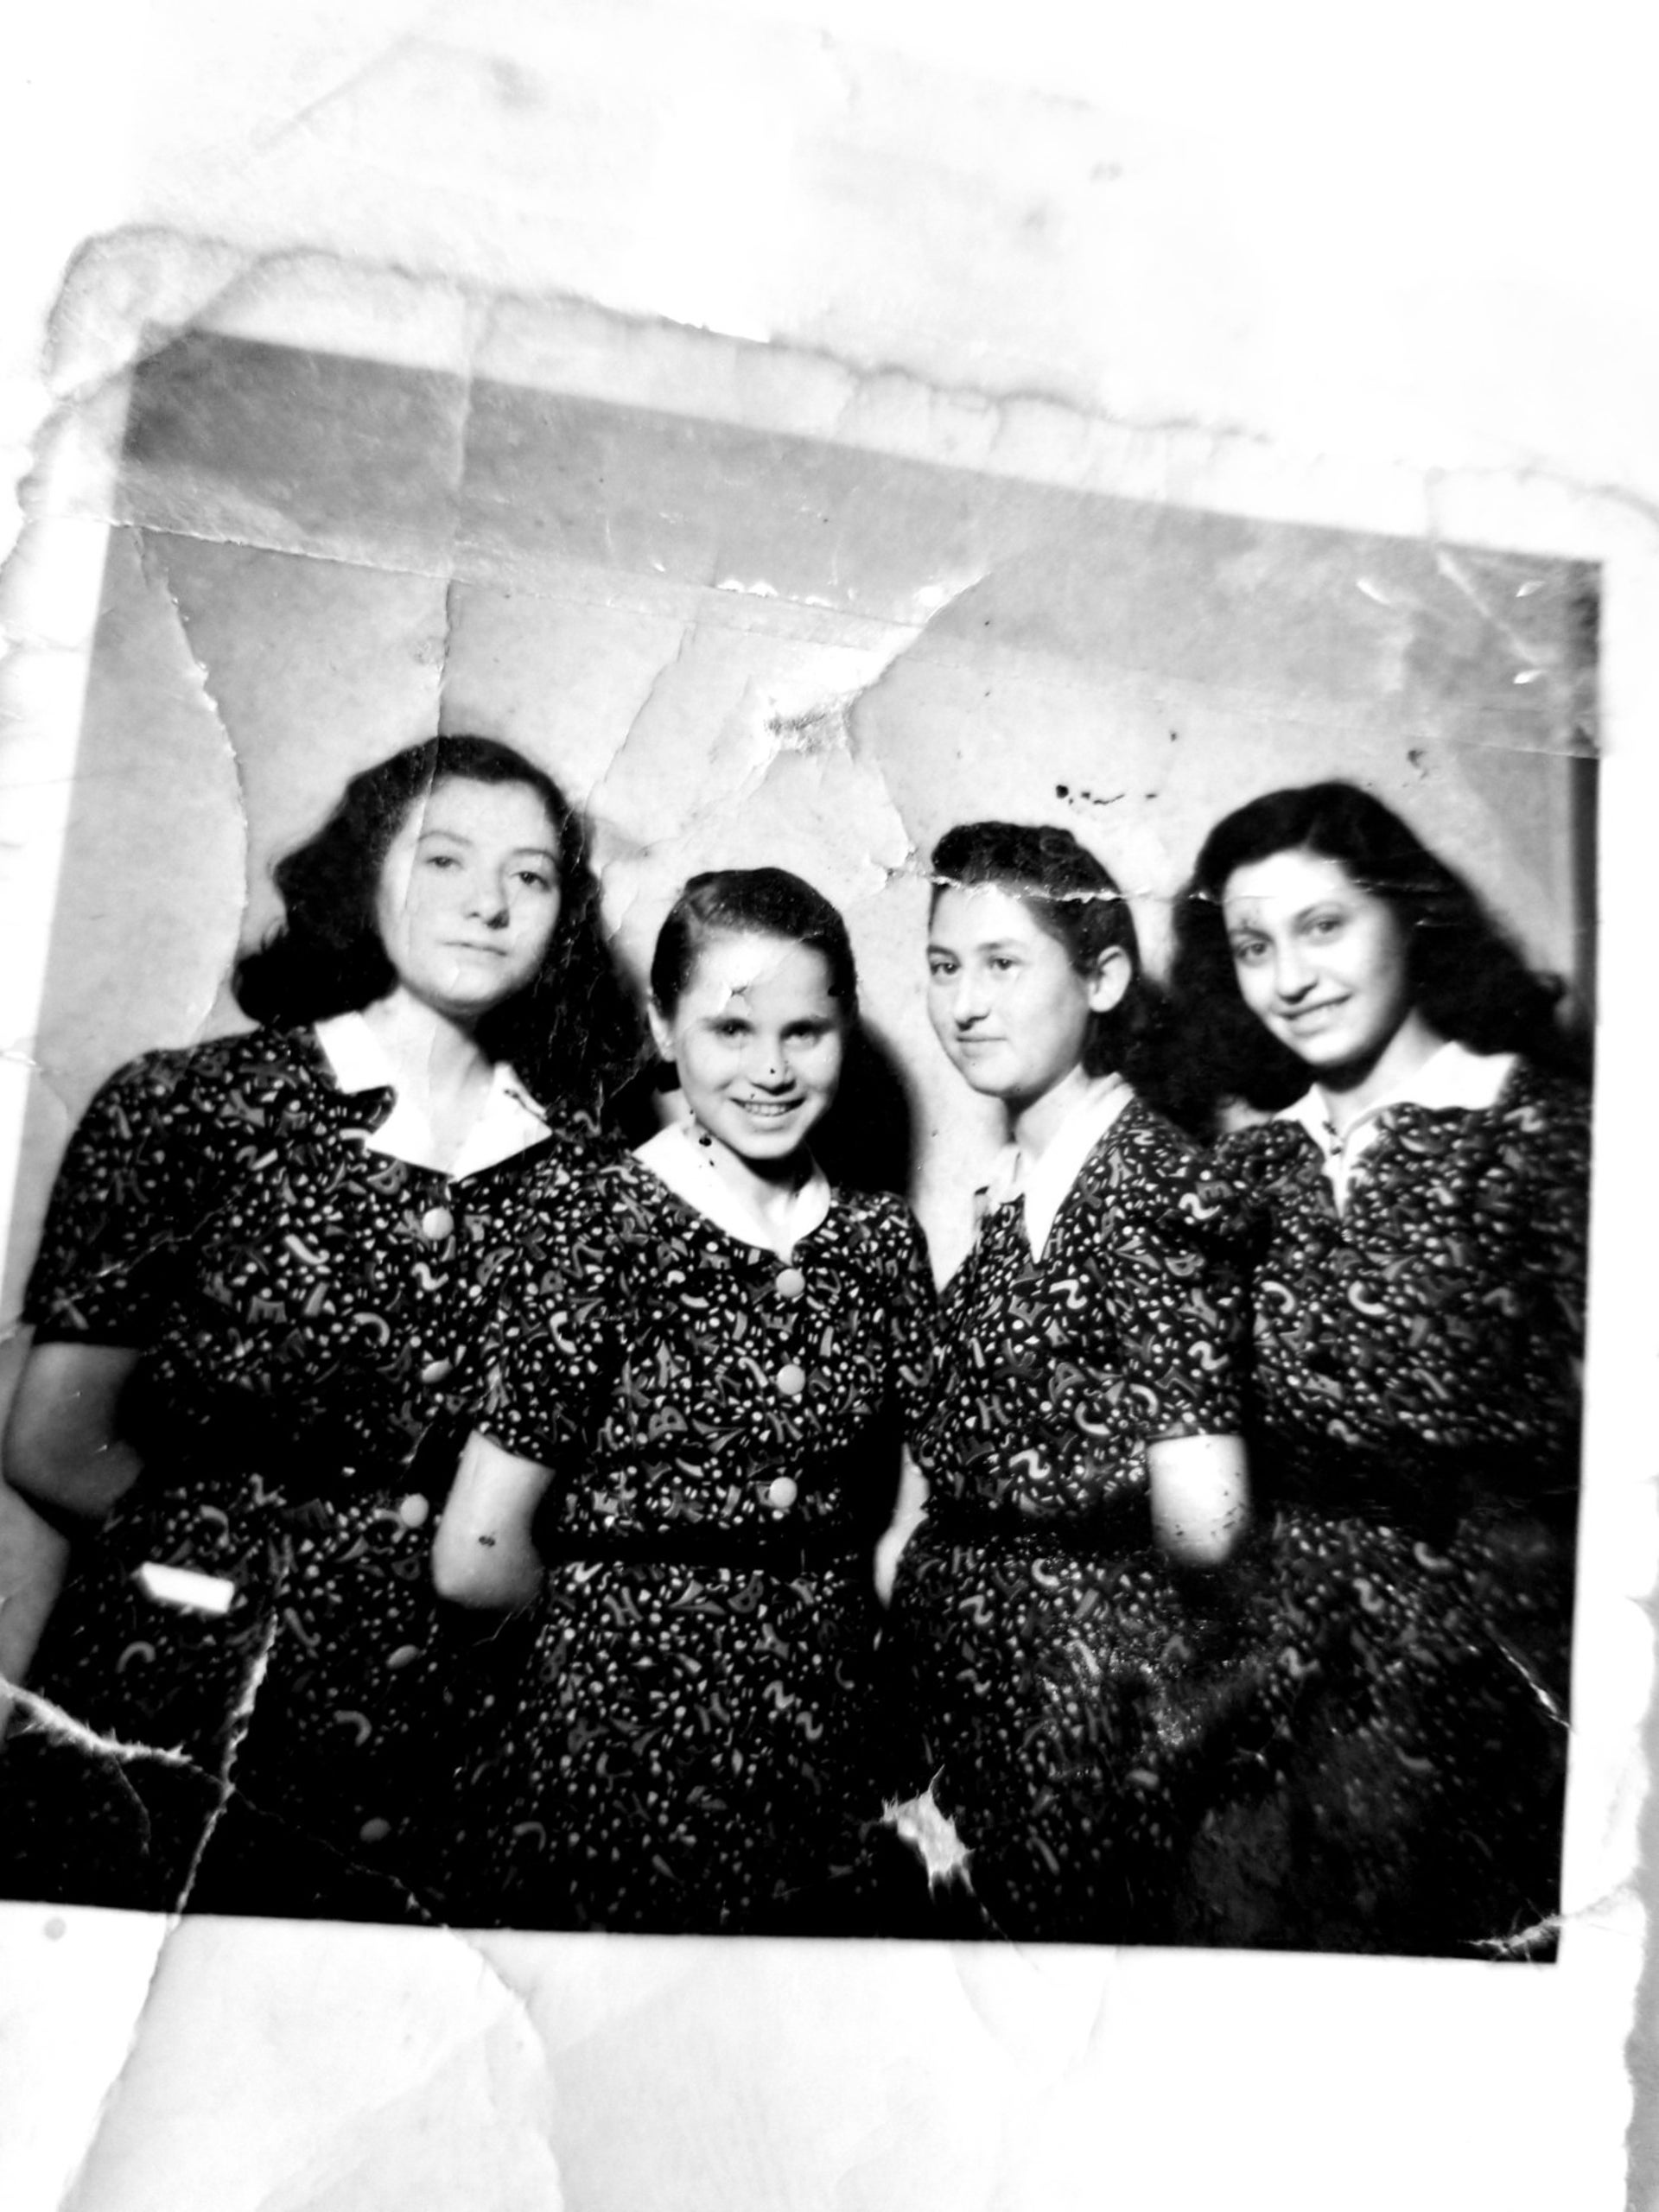 Judit Ornstein, far right, photographed with three other young Jewish women, including Jutka (Judit) Greenbaum and Rosi Eisler, who lived with her in Budapest.